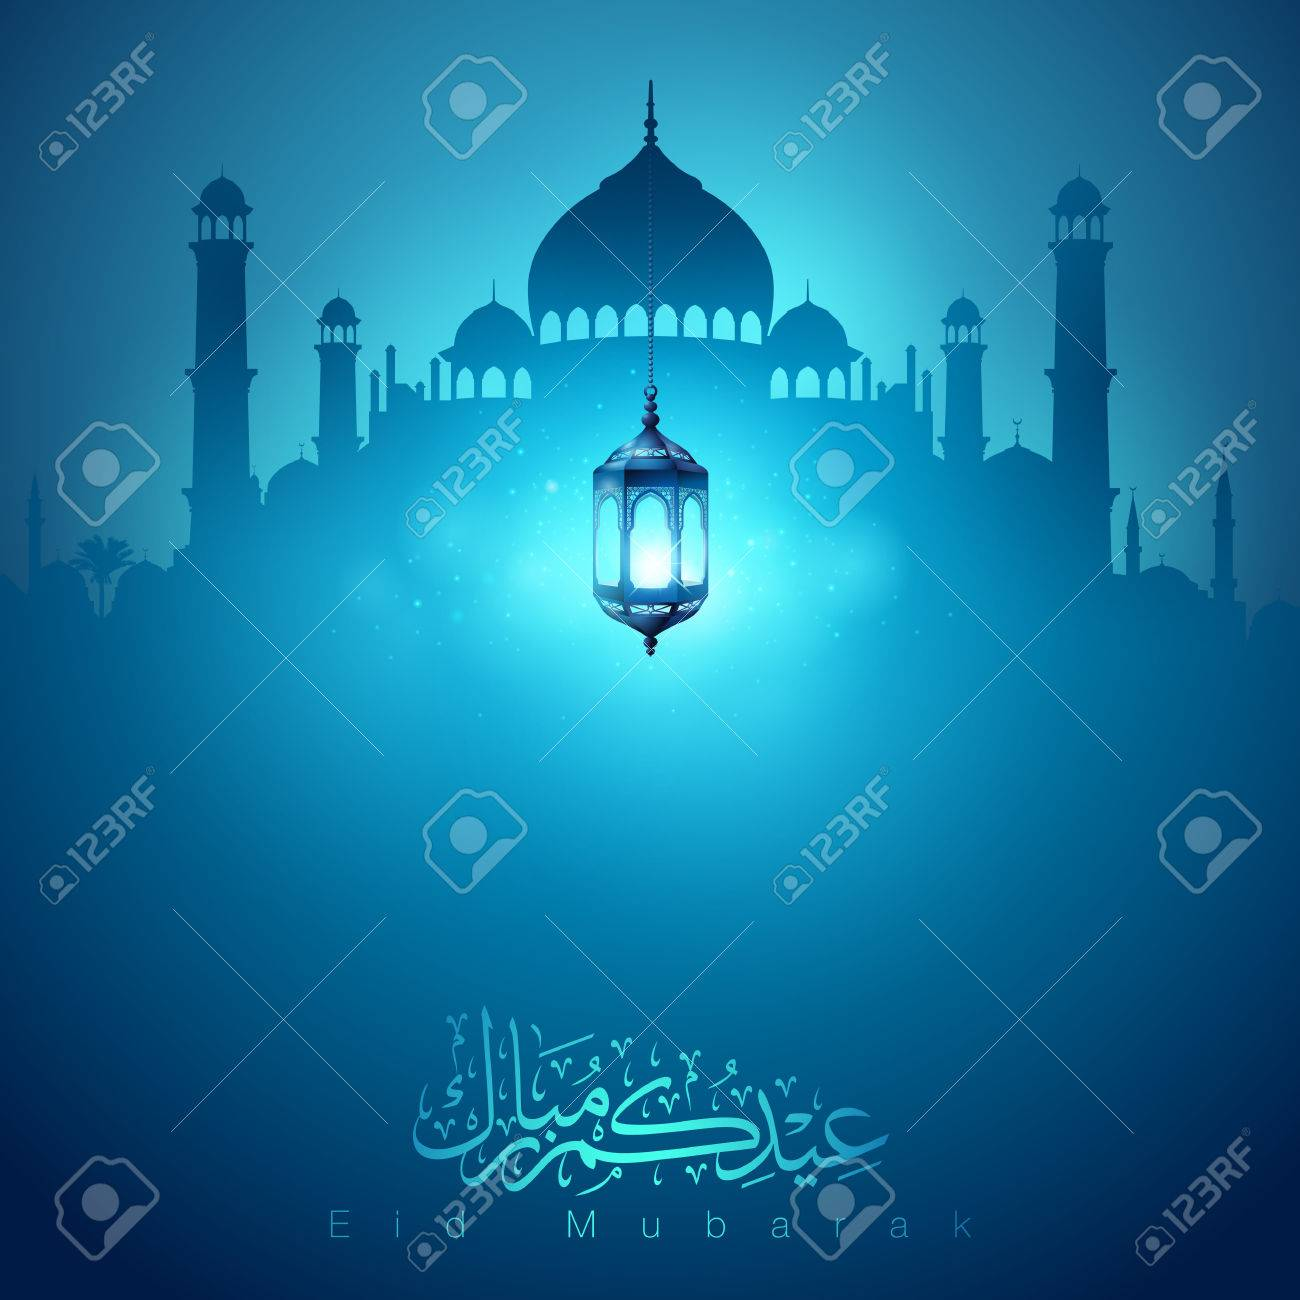 eid mubarak islamic greeting banner design background royalty free cliparts vectors and stock illustration image 62182313 eid mubarak islamic greeting banner design background